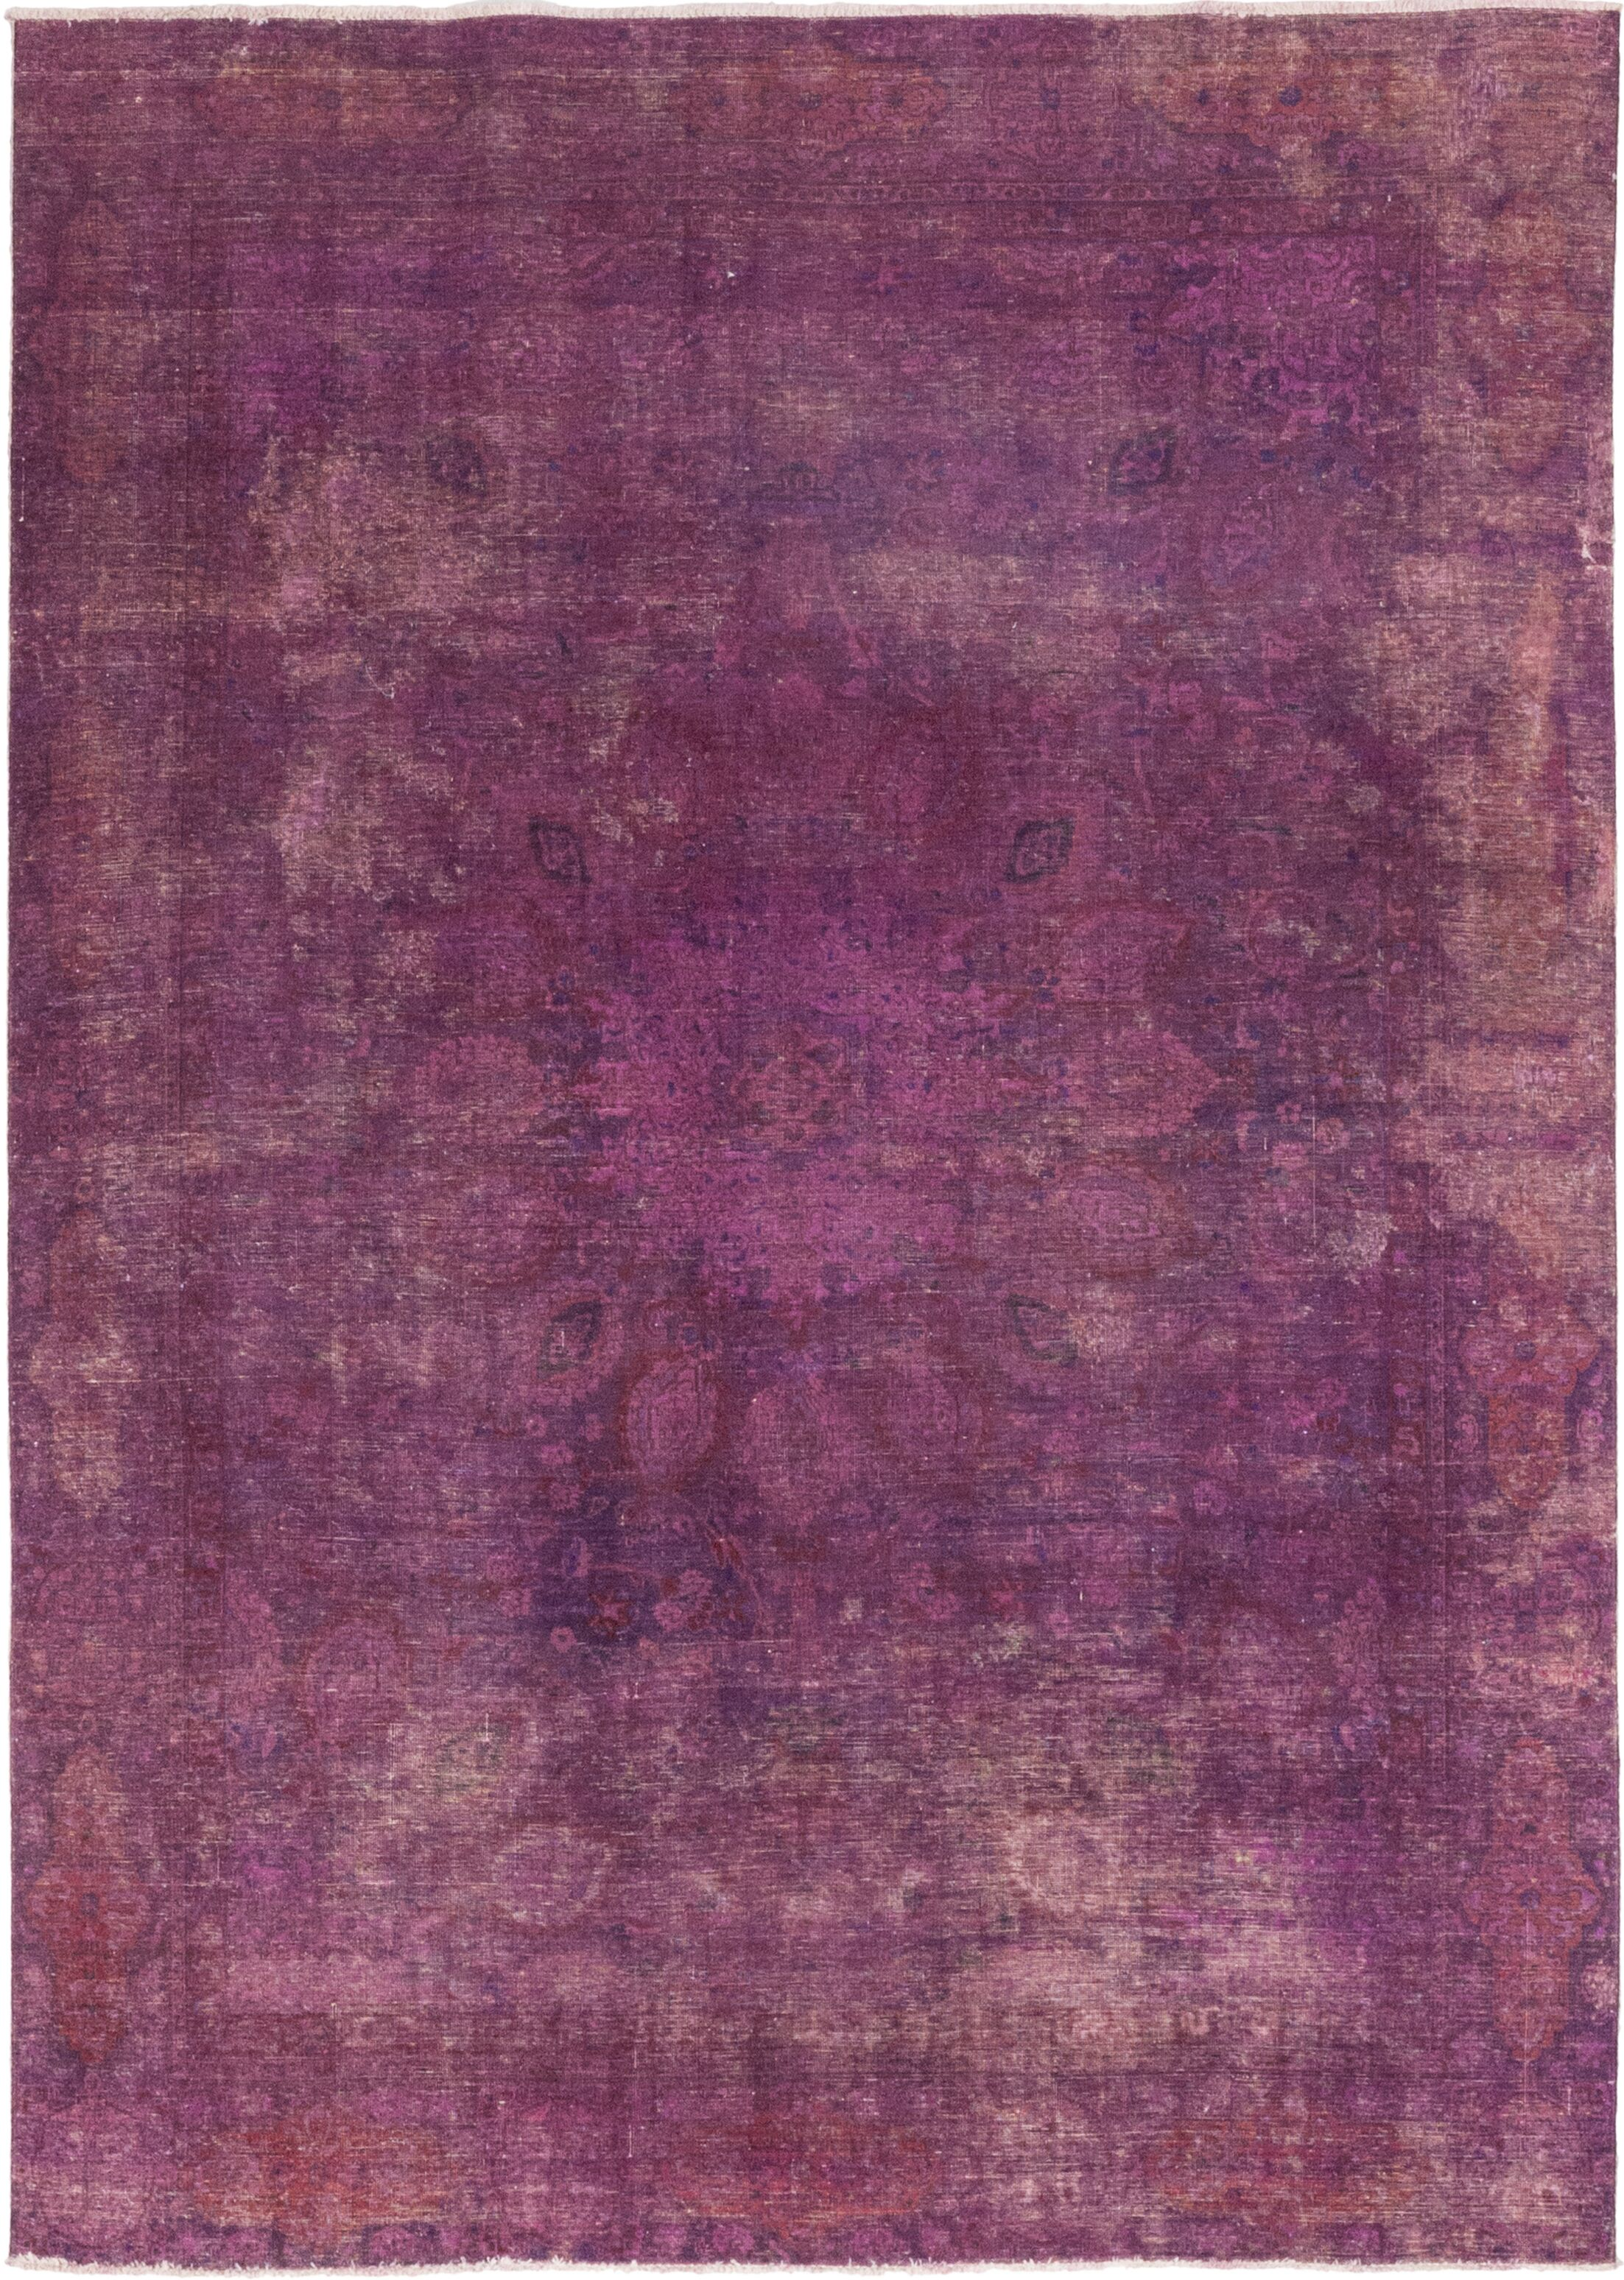 One-of-a-Kind Omane-Brimpong Hand-Knotted Wool Pink Indoor Area Rug